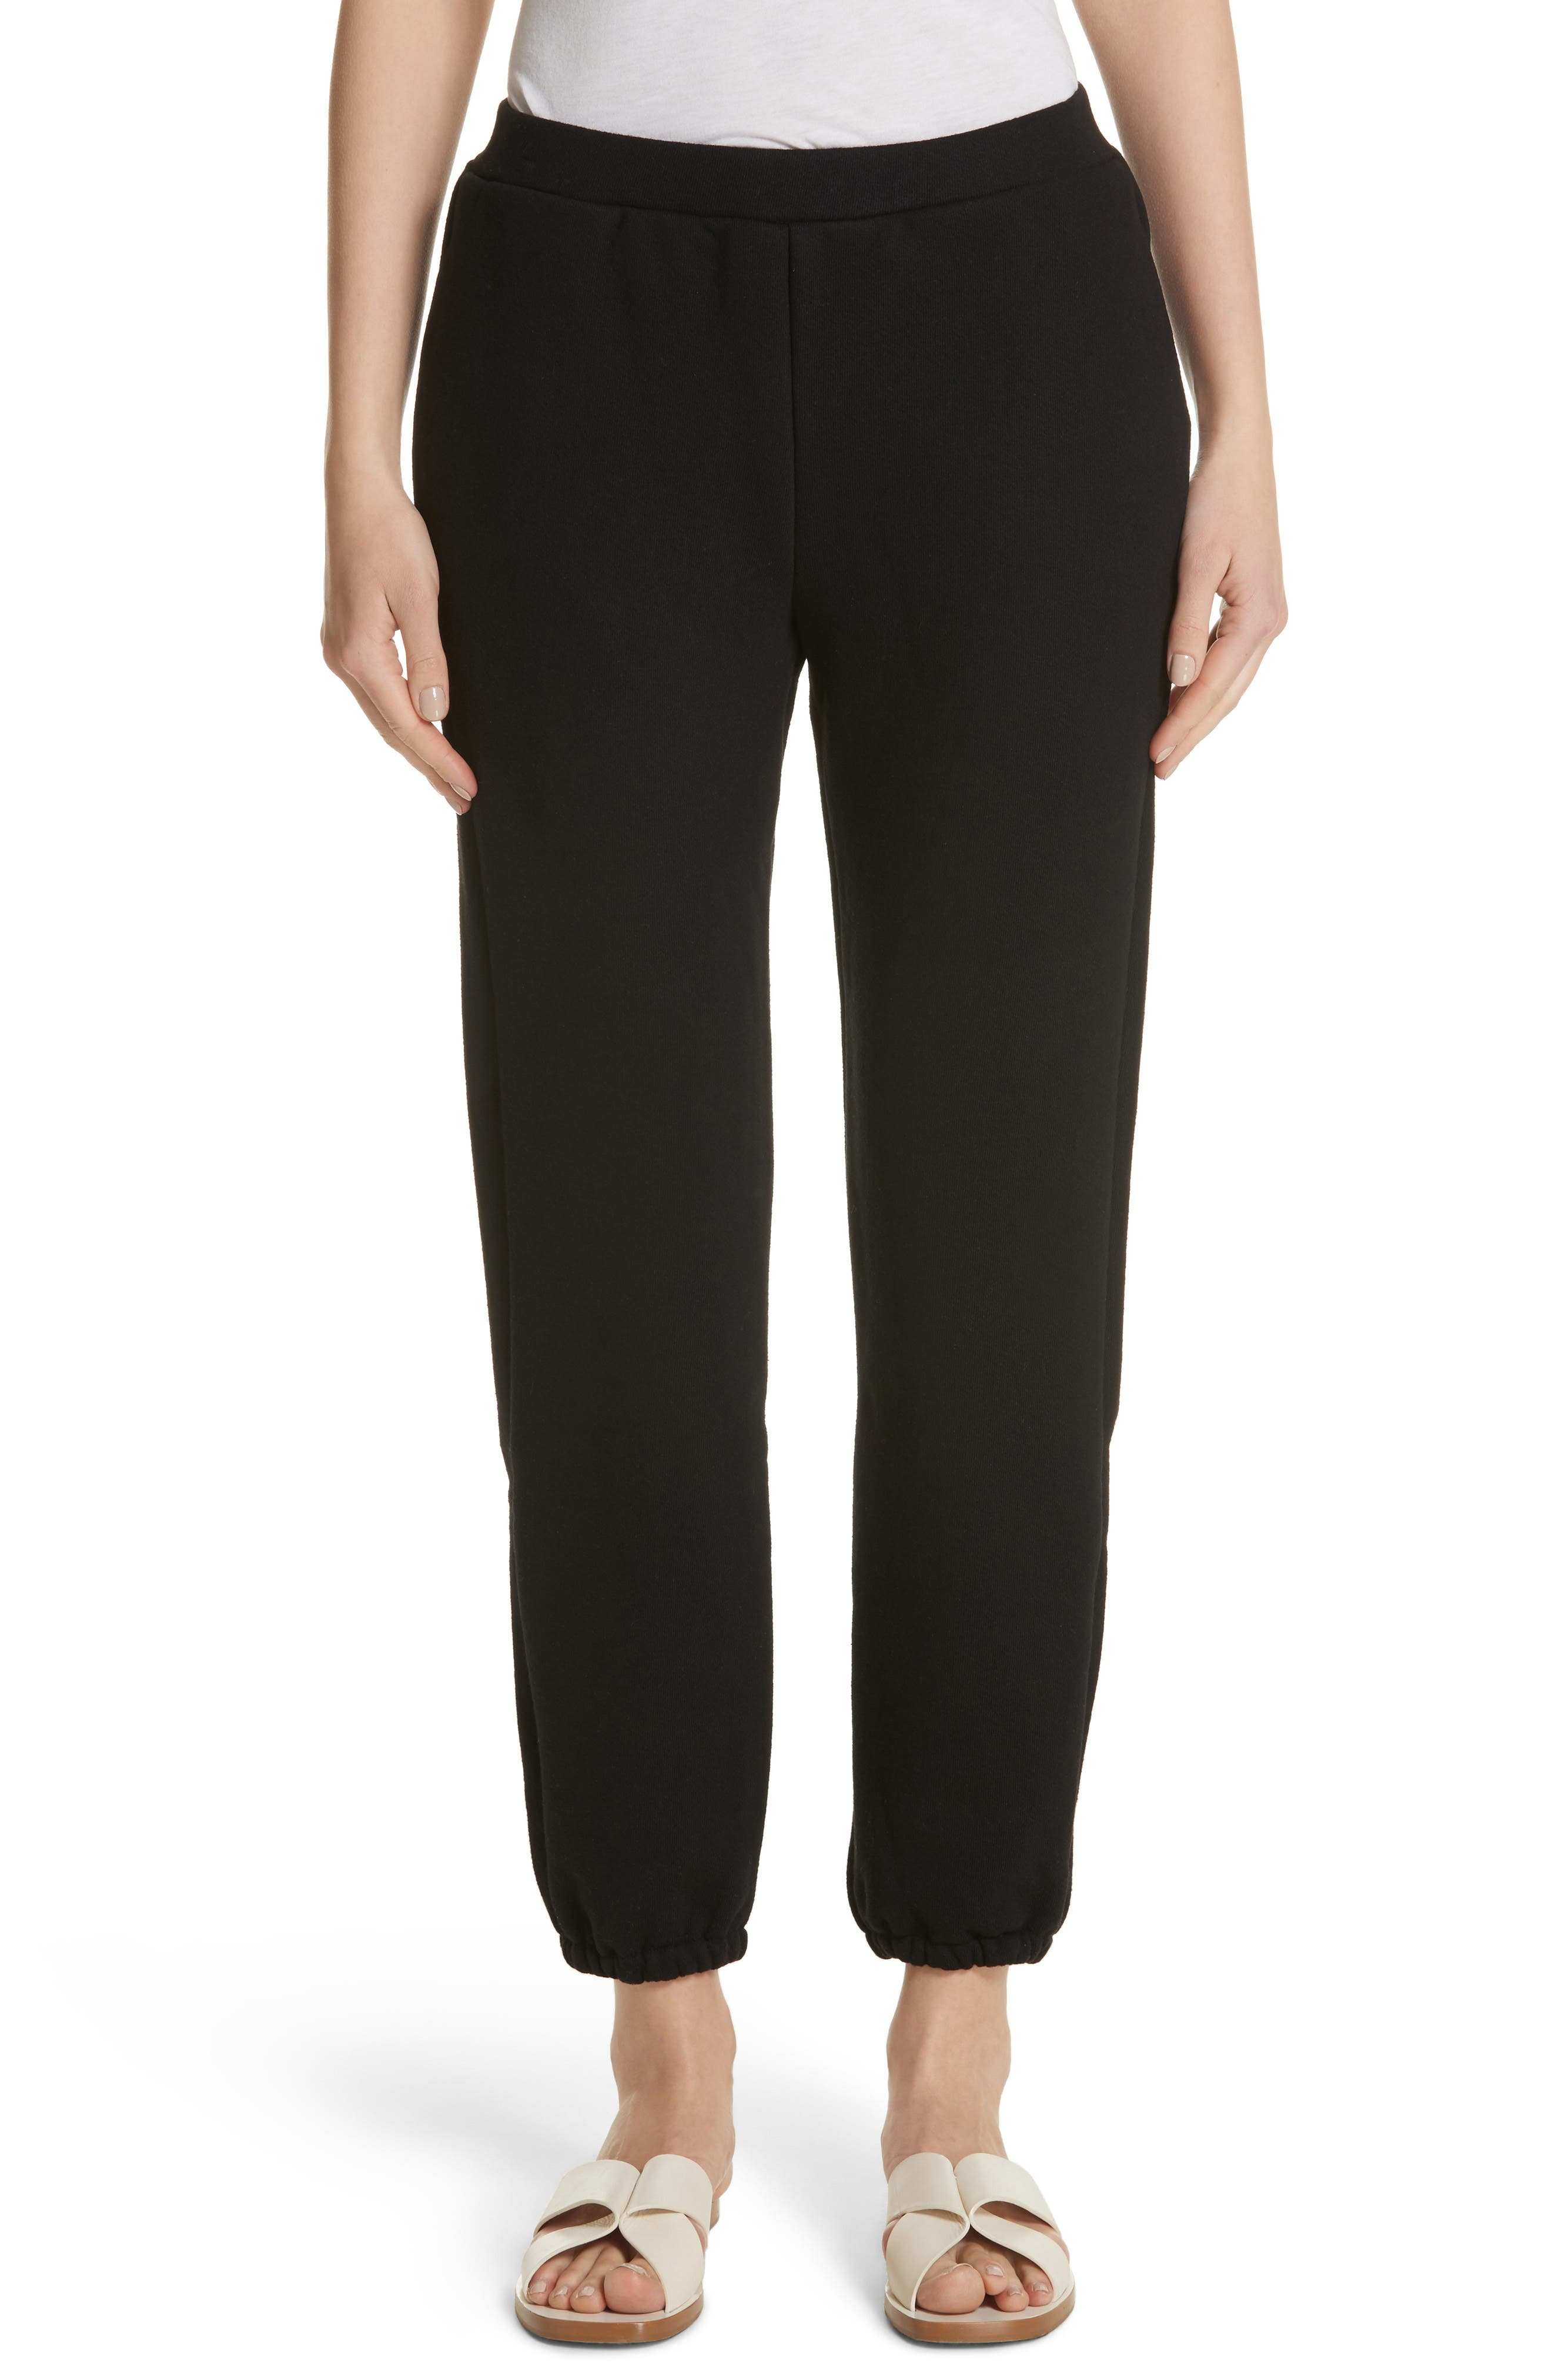 Yuba Sweatpants,                         Main,                         color, Black